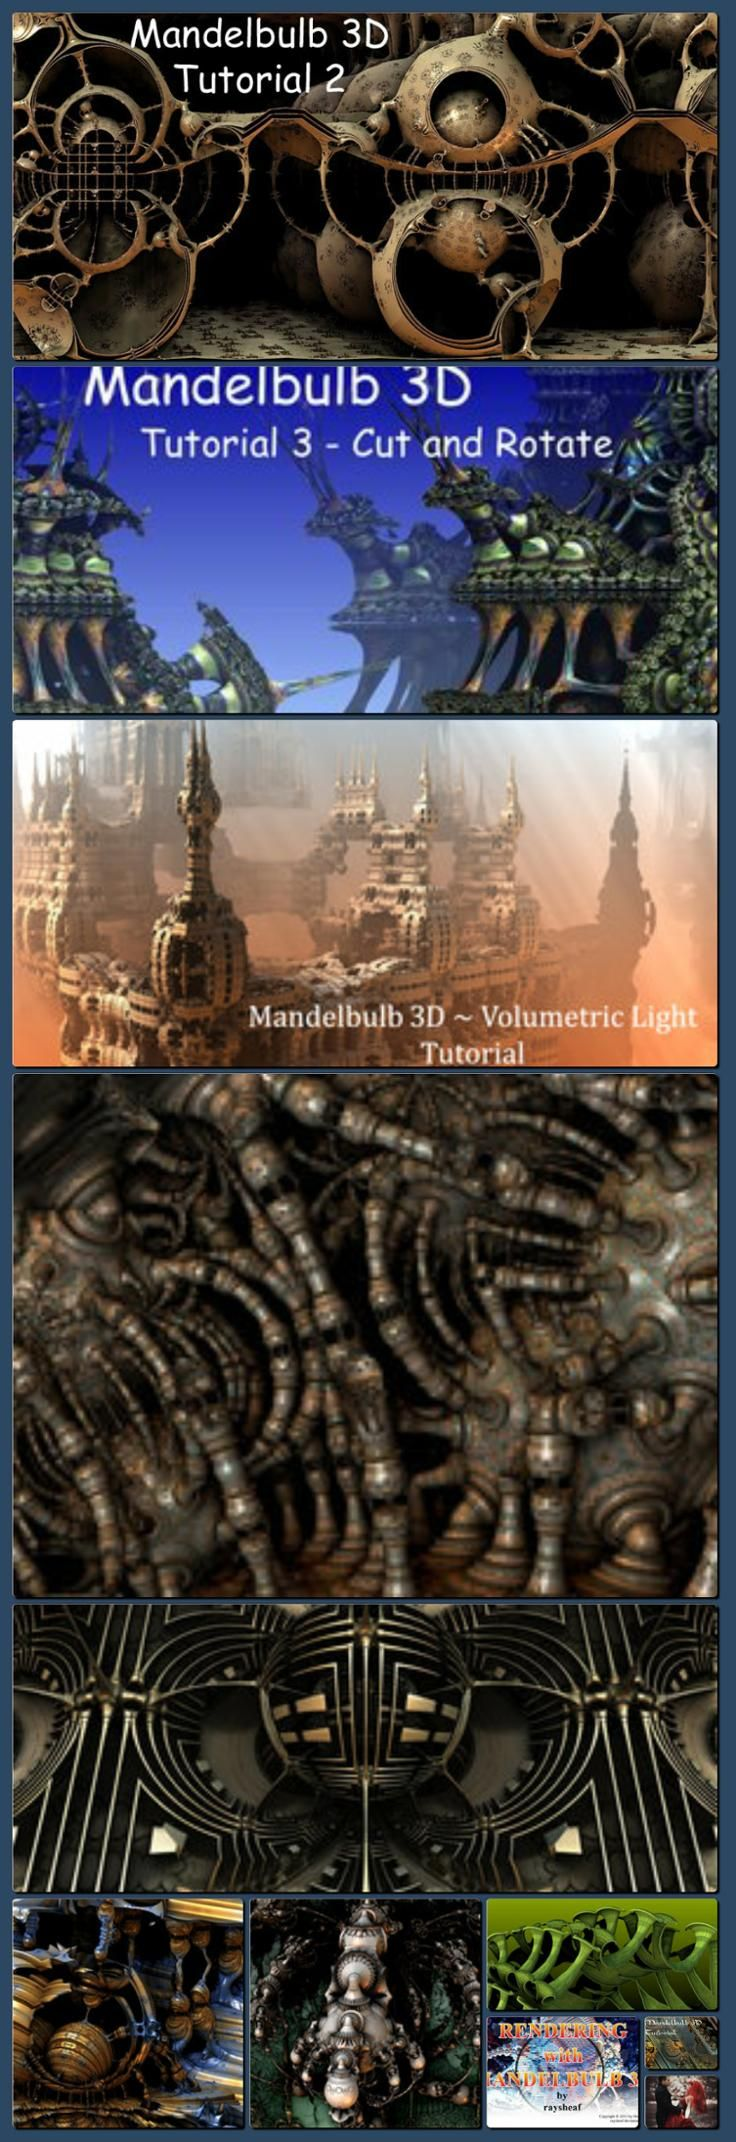 Mandelbulb 3D Tutorial 2 by HalTenny on deviantART [Collage made with one click using http://pagecollage.com] #pagecollage http://hoog.li/g?g=http%3A%2F%2Fhaltenny.deviantart.com%2Fart%2FMandelbulb-3D-Tutorial-2-192449982